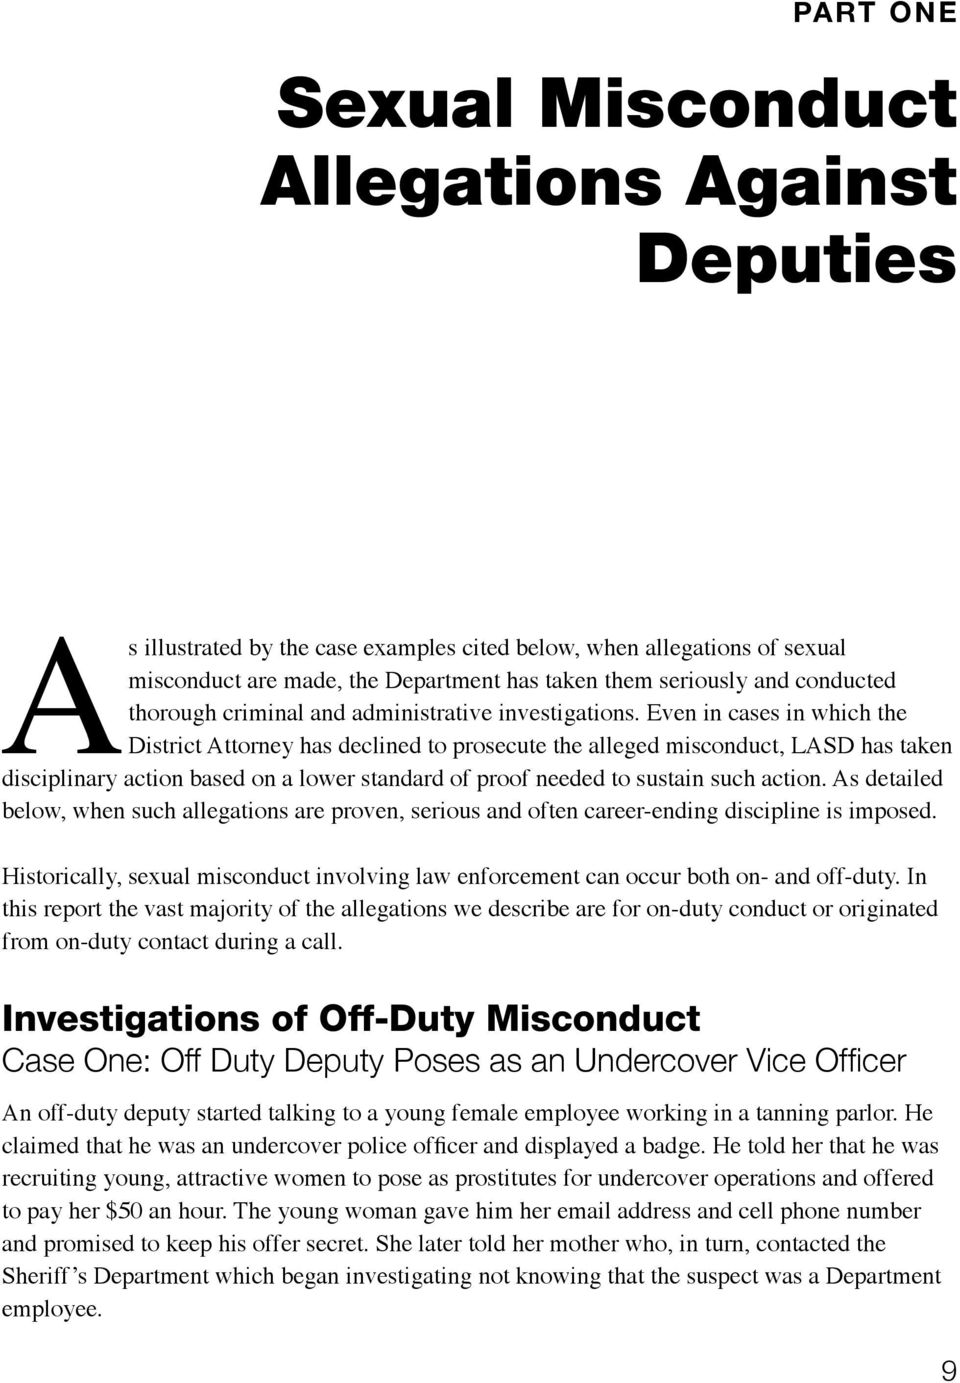 Even in cases in which the District Attorney has declined to prosecute the alleged misconduct, LASD has taken disciplinary action based on a lower standard of proof needed to sustain such action.